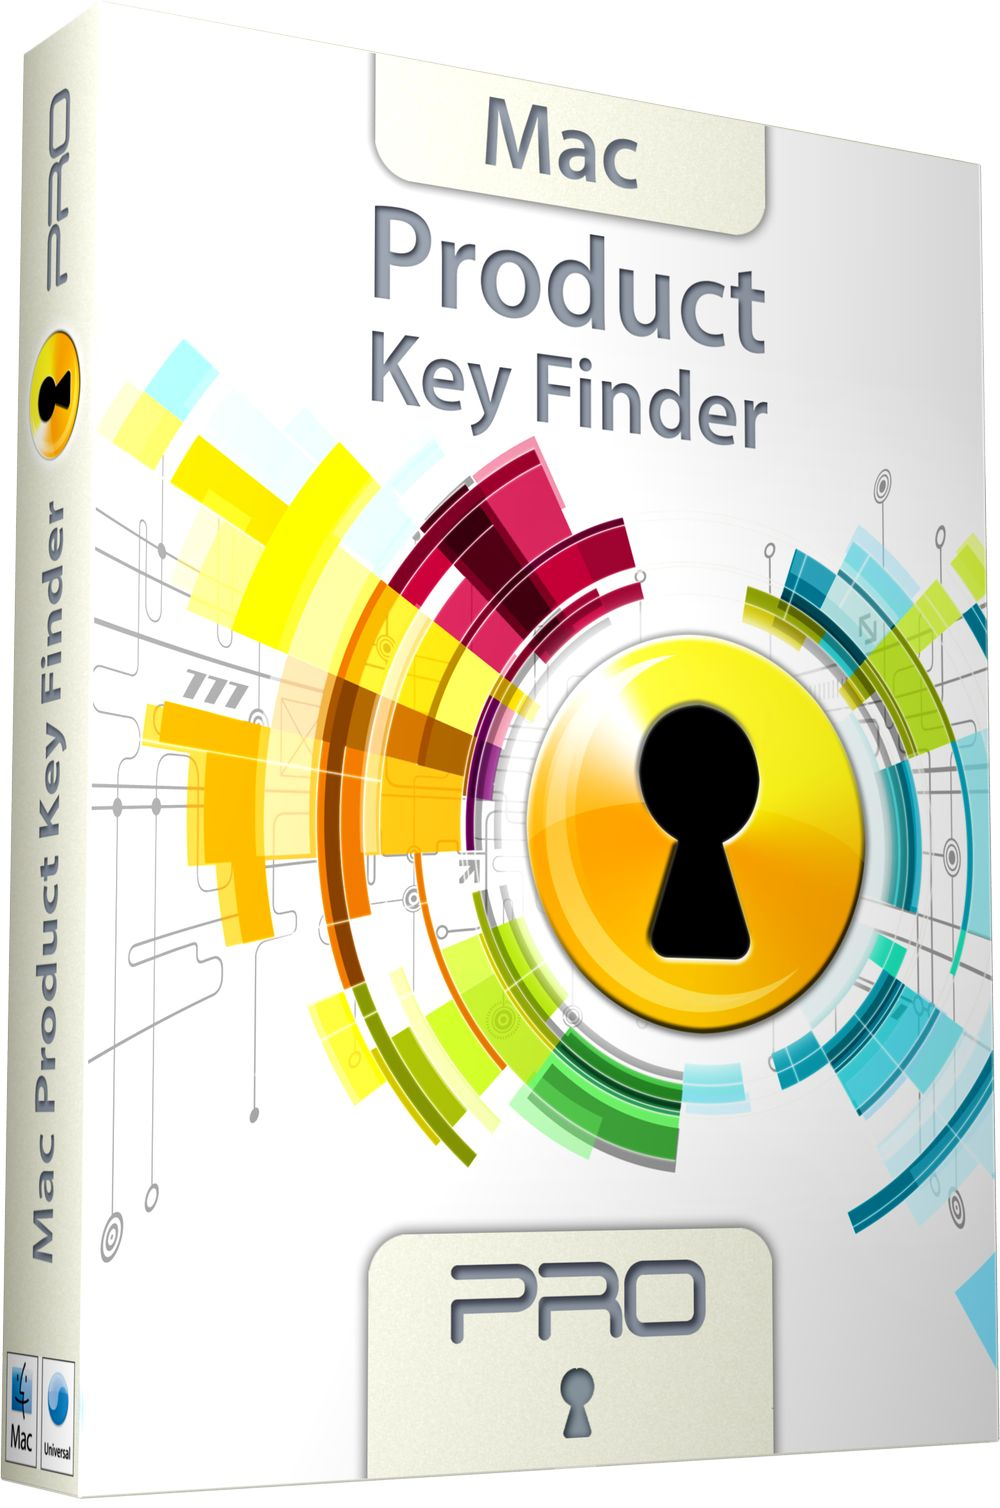 Mac Product Key Finder Mac App